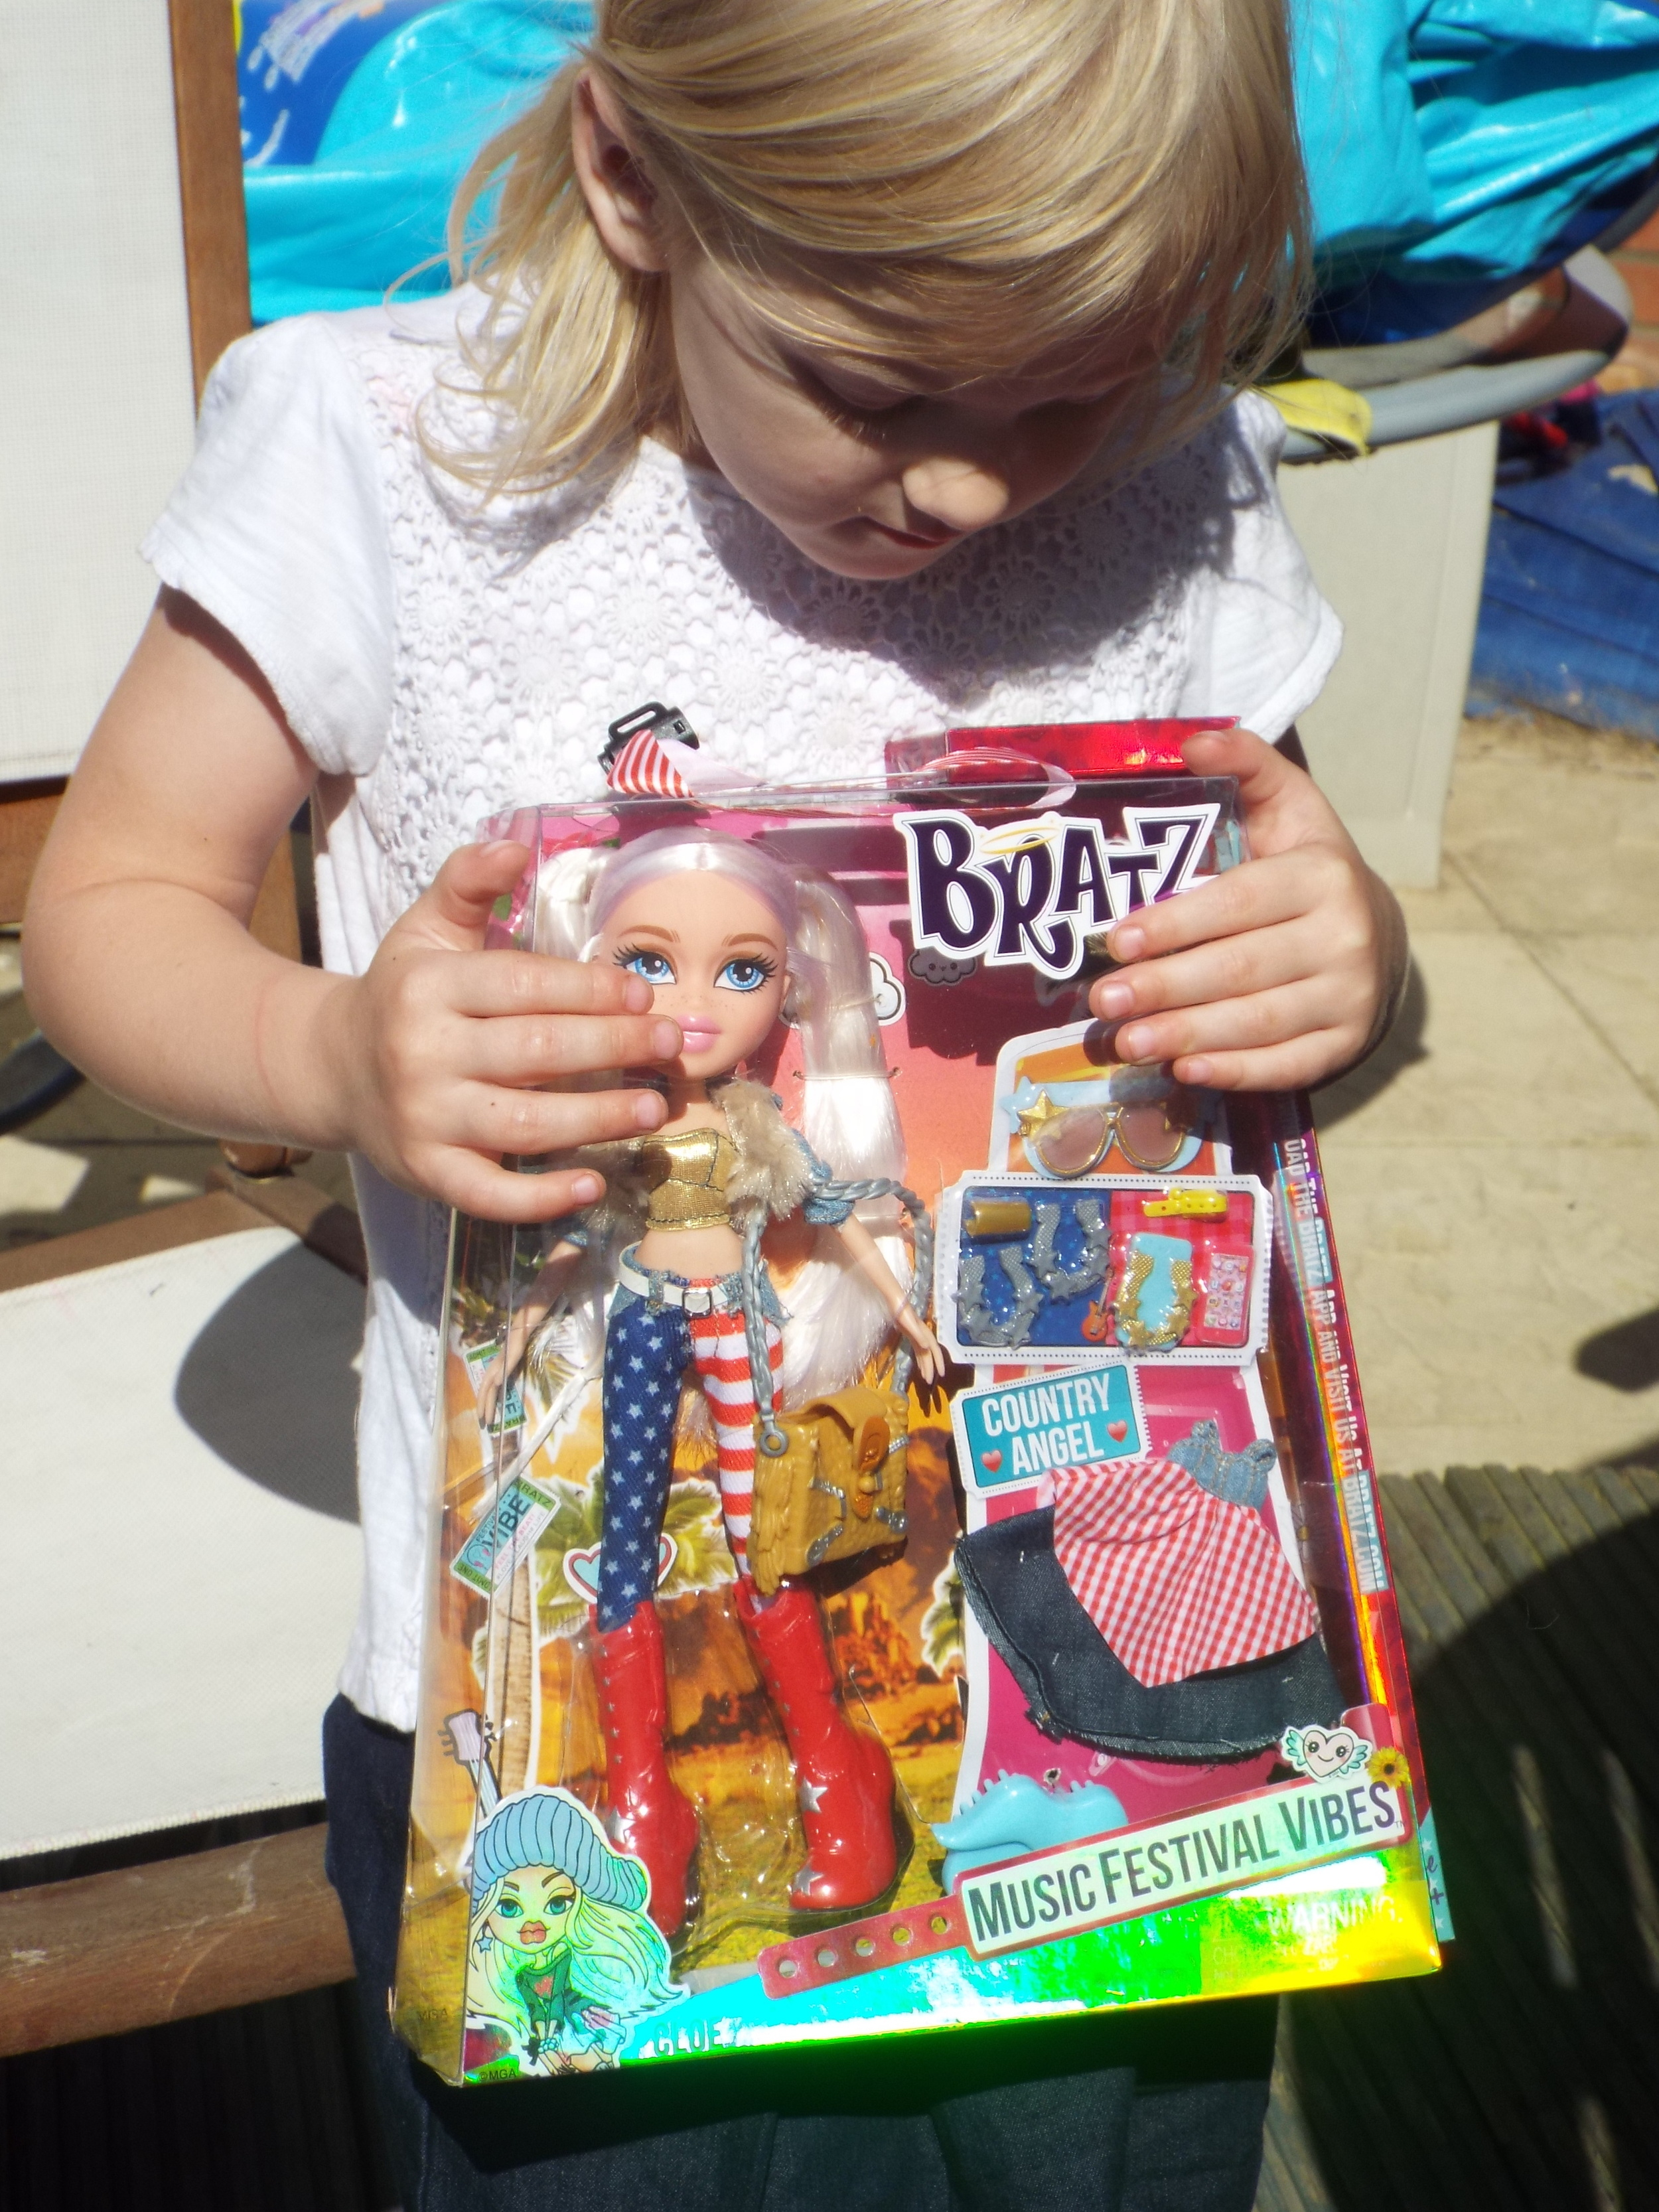 We are a nation of festival lovers -a survey carried out by the iconic fashion doll Bratz,discovered that 7 out of 10 parents are keen to head to a festival with their kids instead of on a traditional summer holiday. And it's no surprise that Glasto was the pick of the bunch with 1 in 5 (22%) of parents keen to attend.